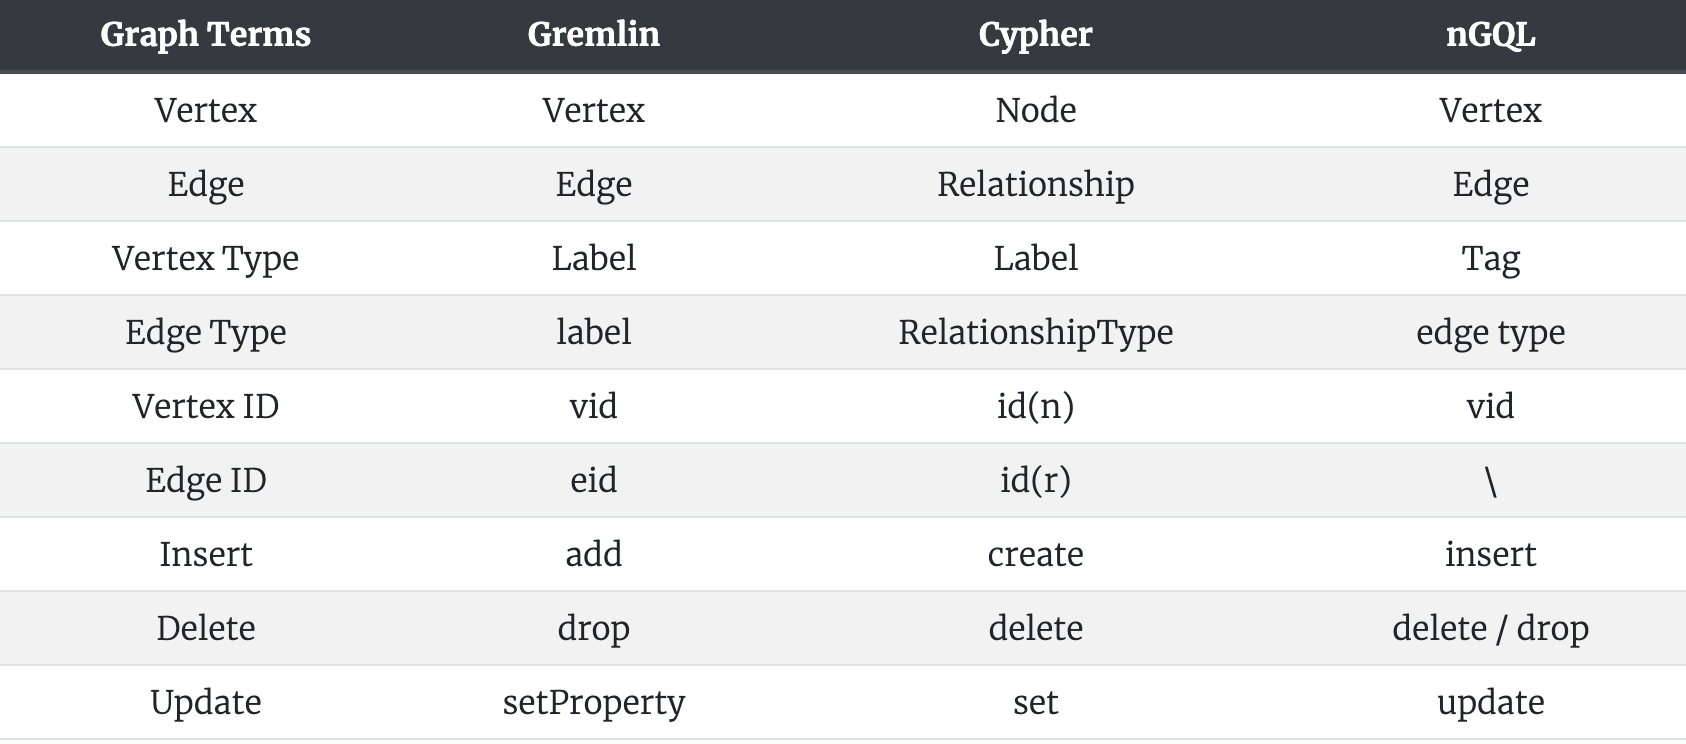 Graph Terms Comparison among Cypher, Gremlin, and nGQL